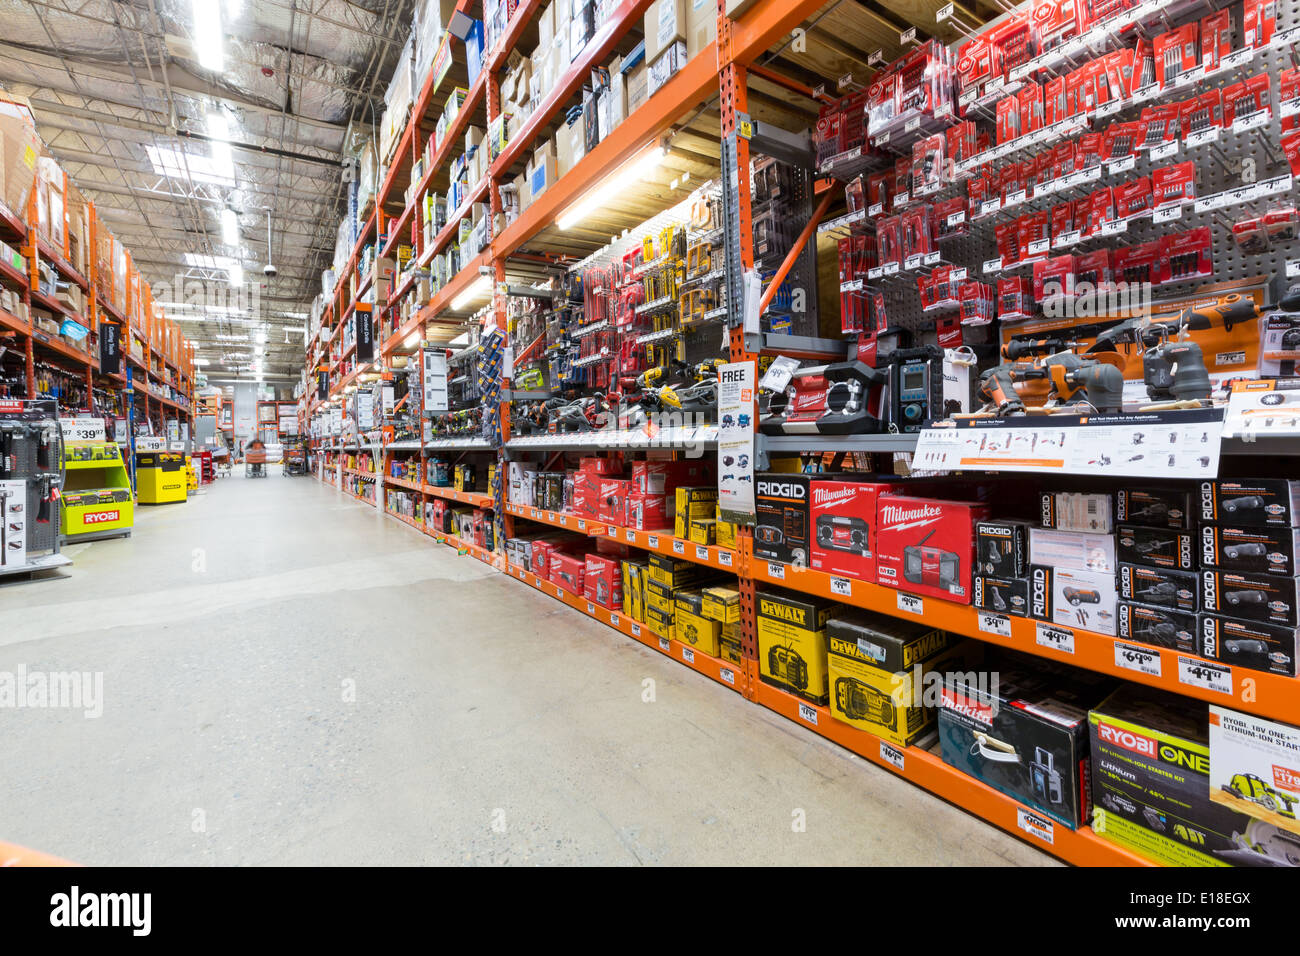 Shelves in an American home improvement store - Stock Image